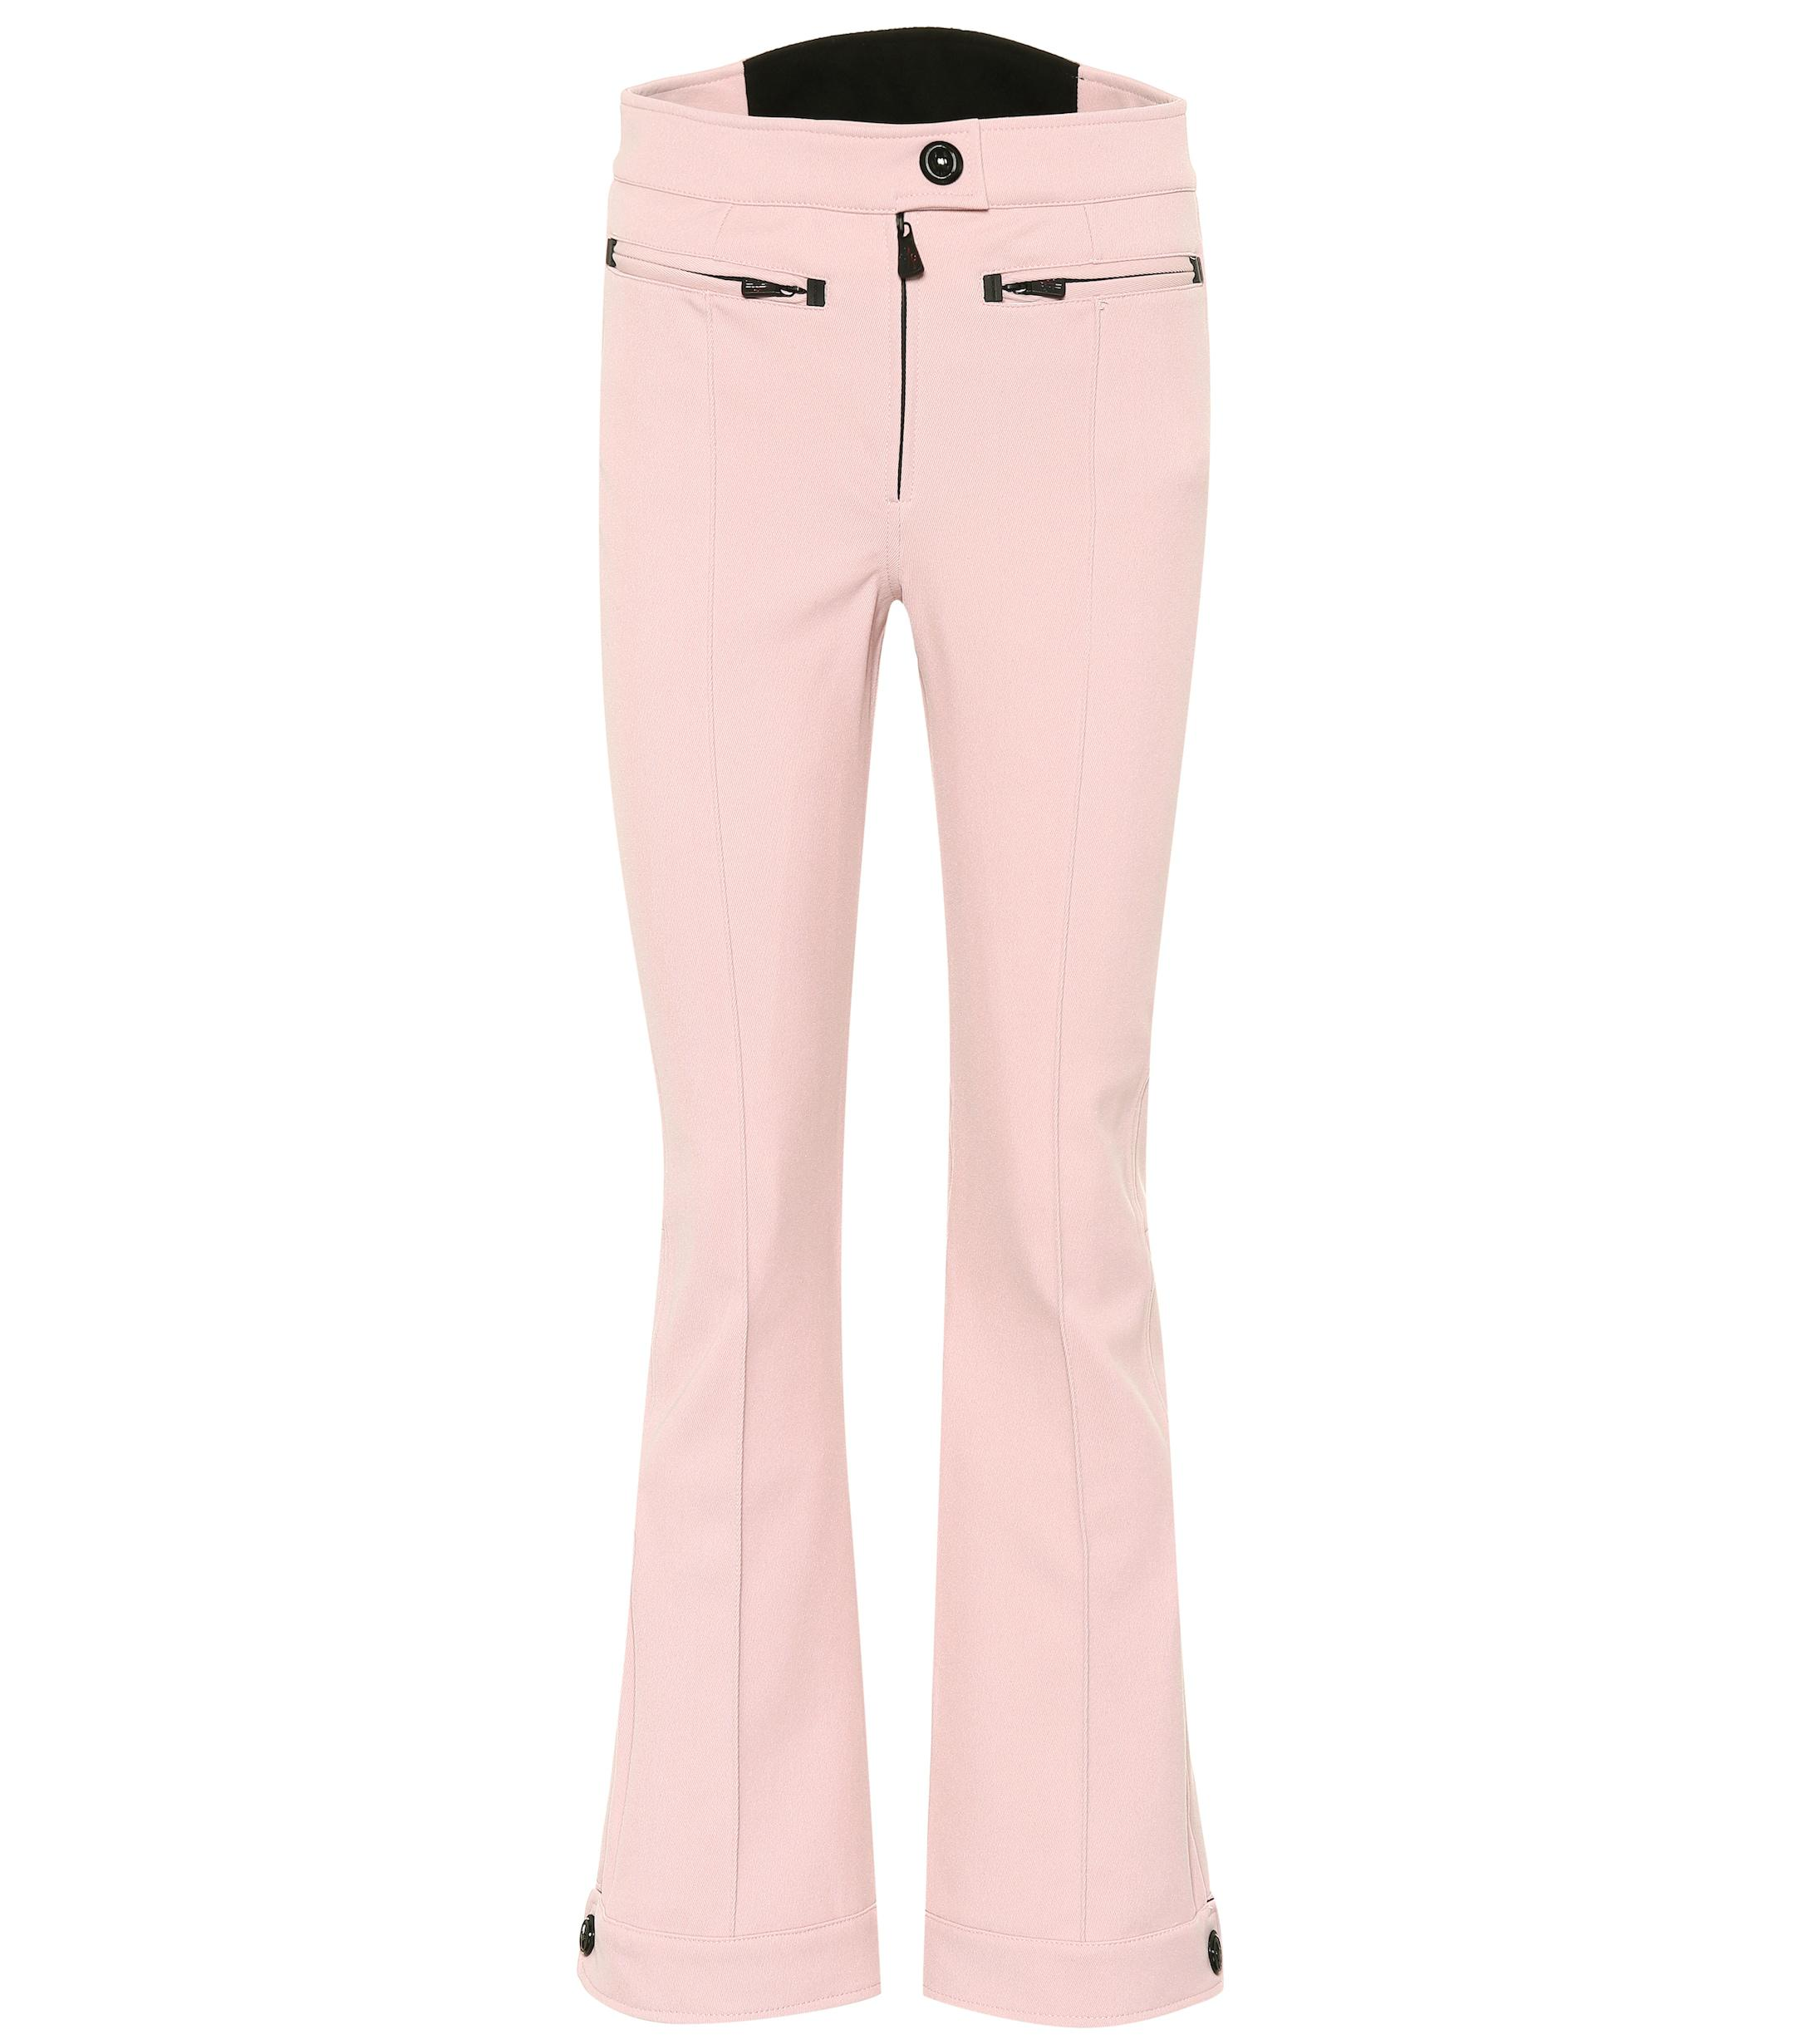 Lyst - Moncler Grenoble Ski Pants in Pink a648d53b5